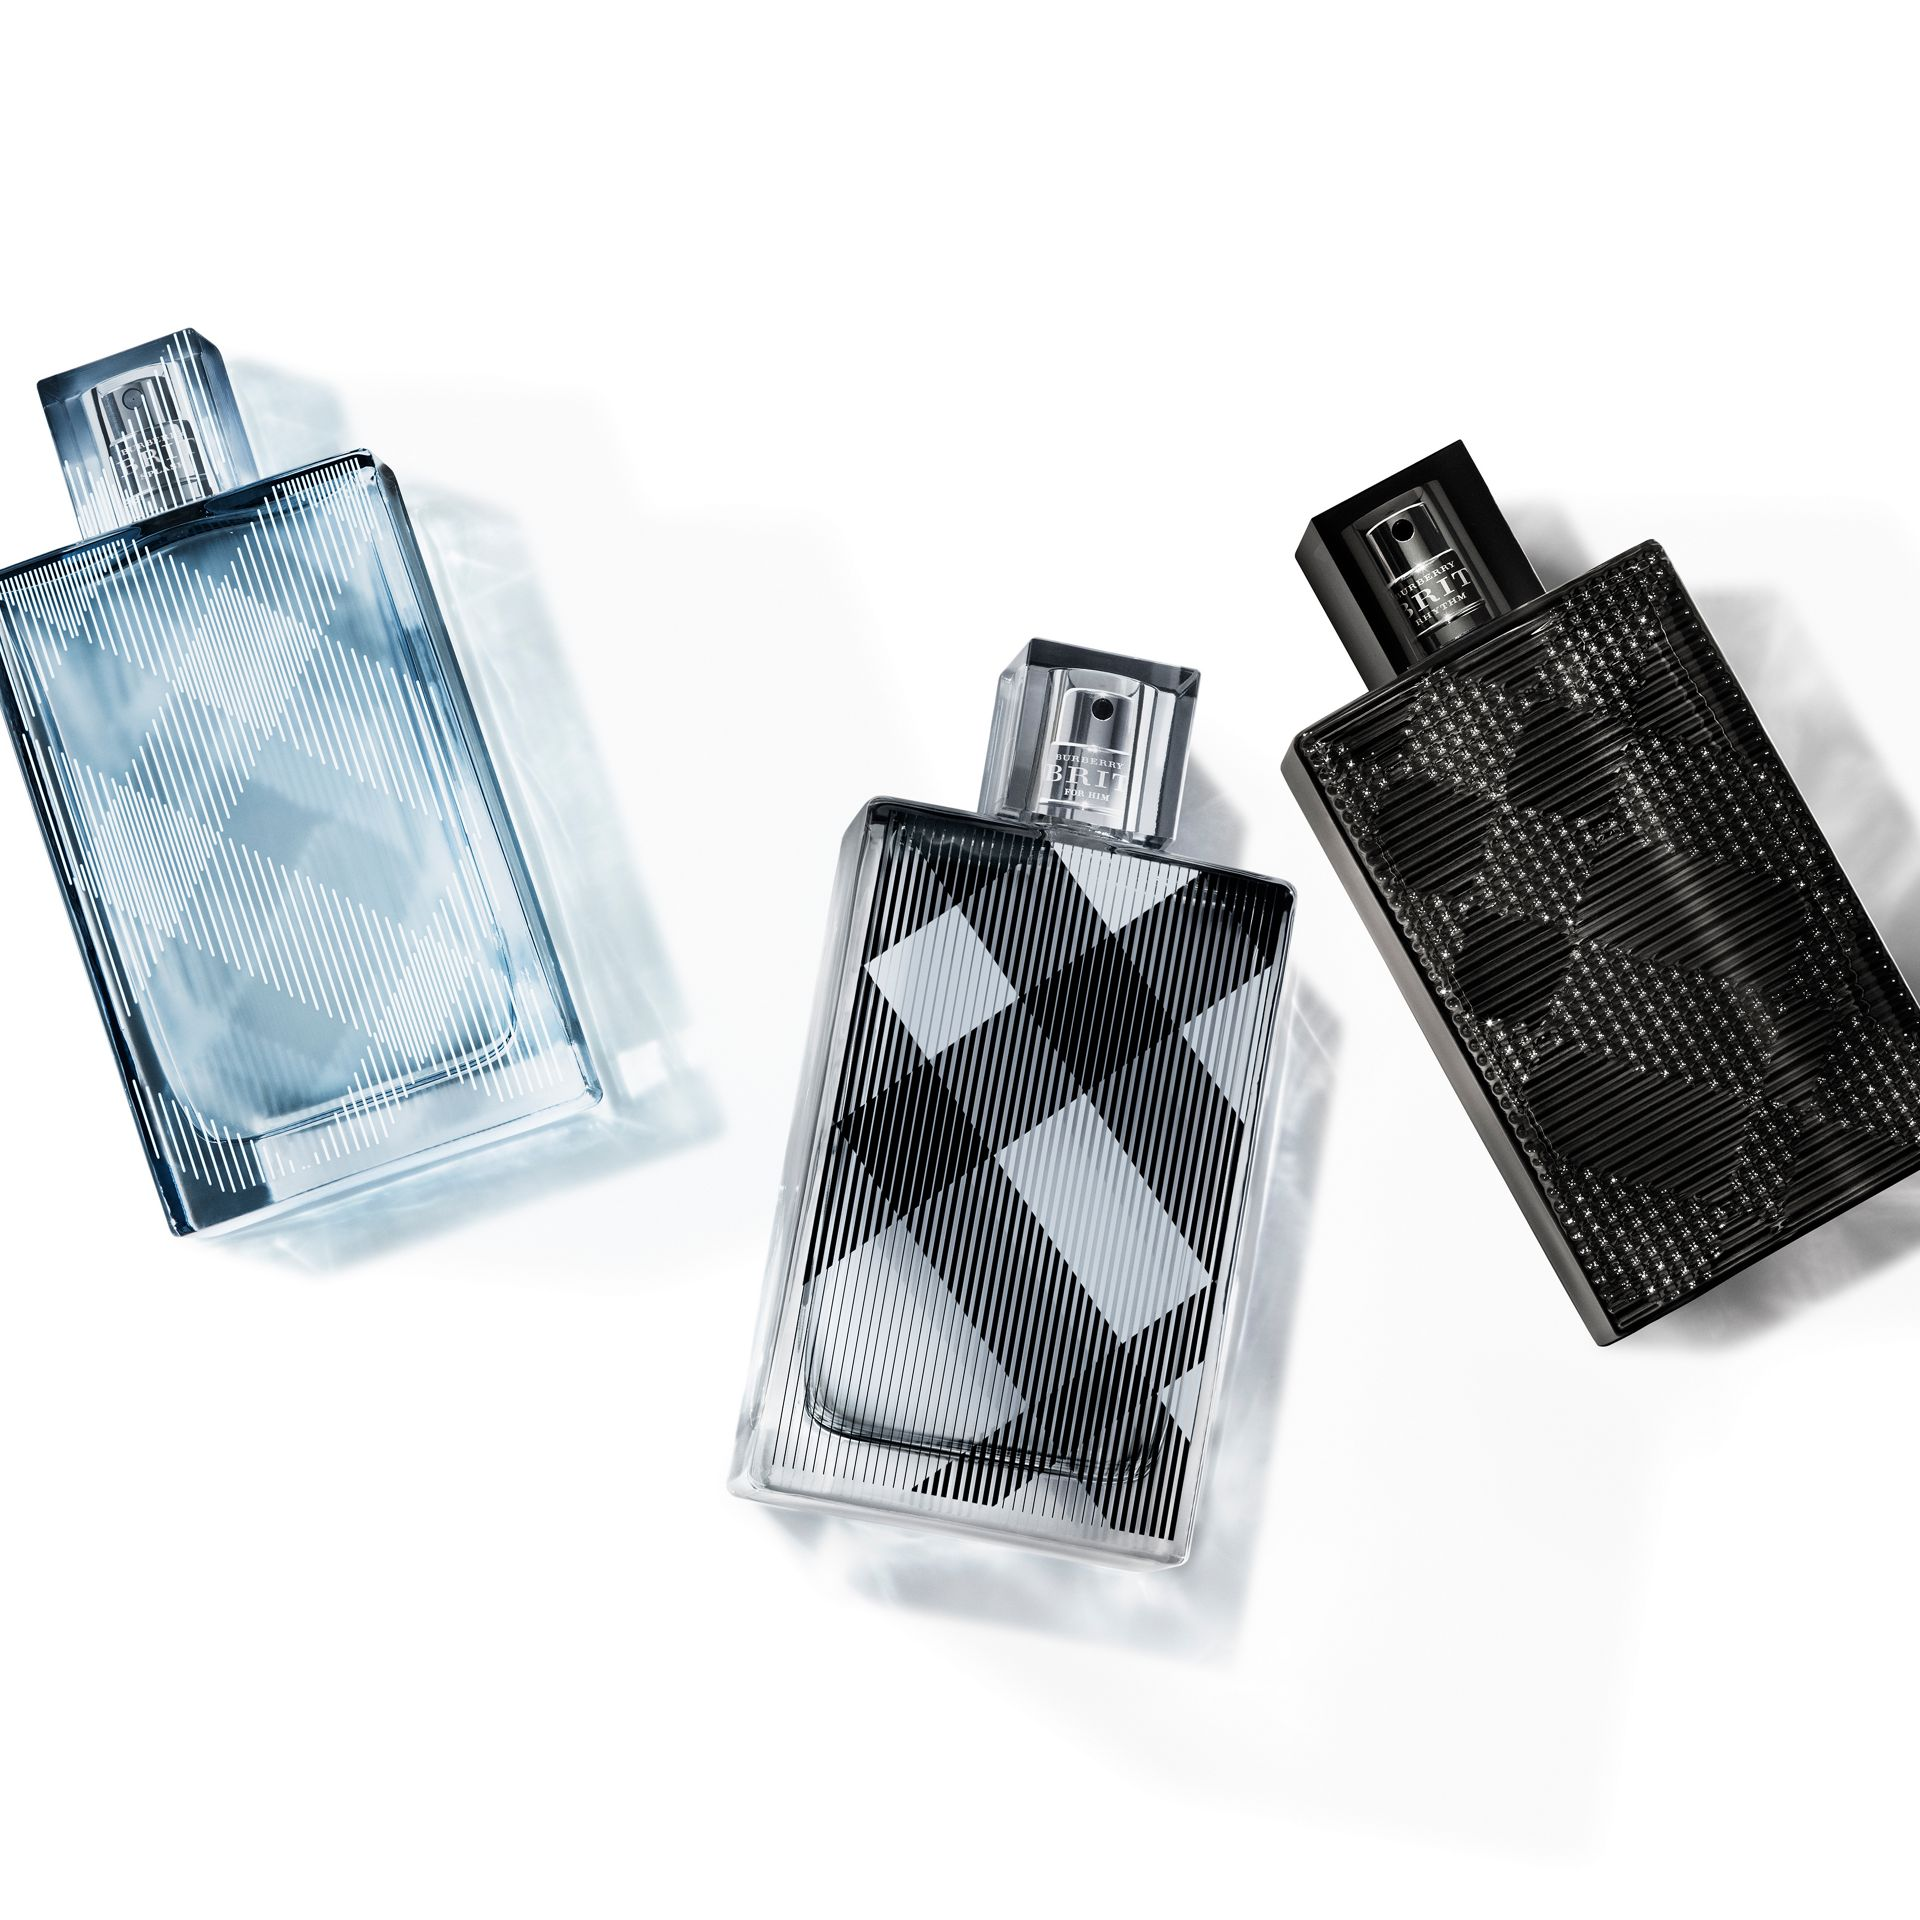 Burberry Brit Splash Eau de Toilette 100 ml - Uomo | Burberry - immagine della galleria 2